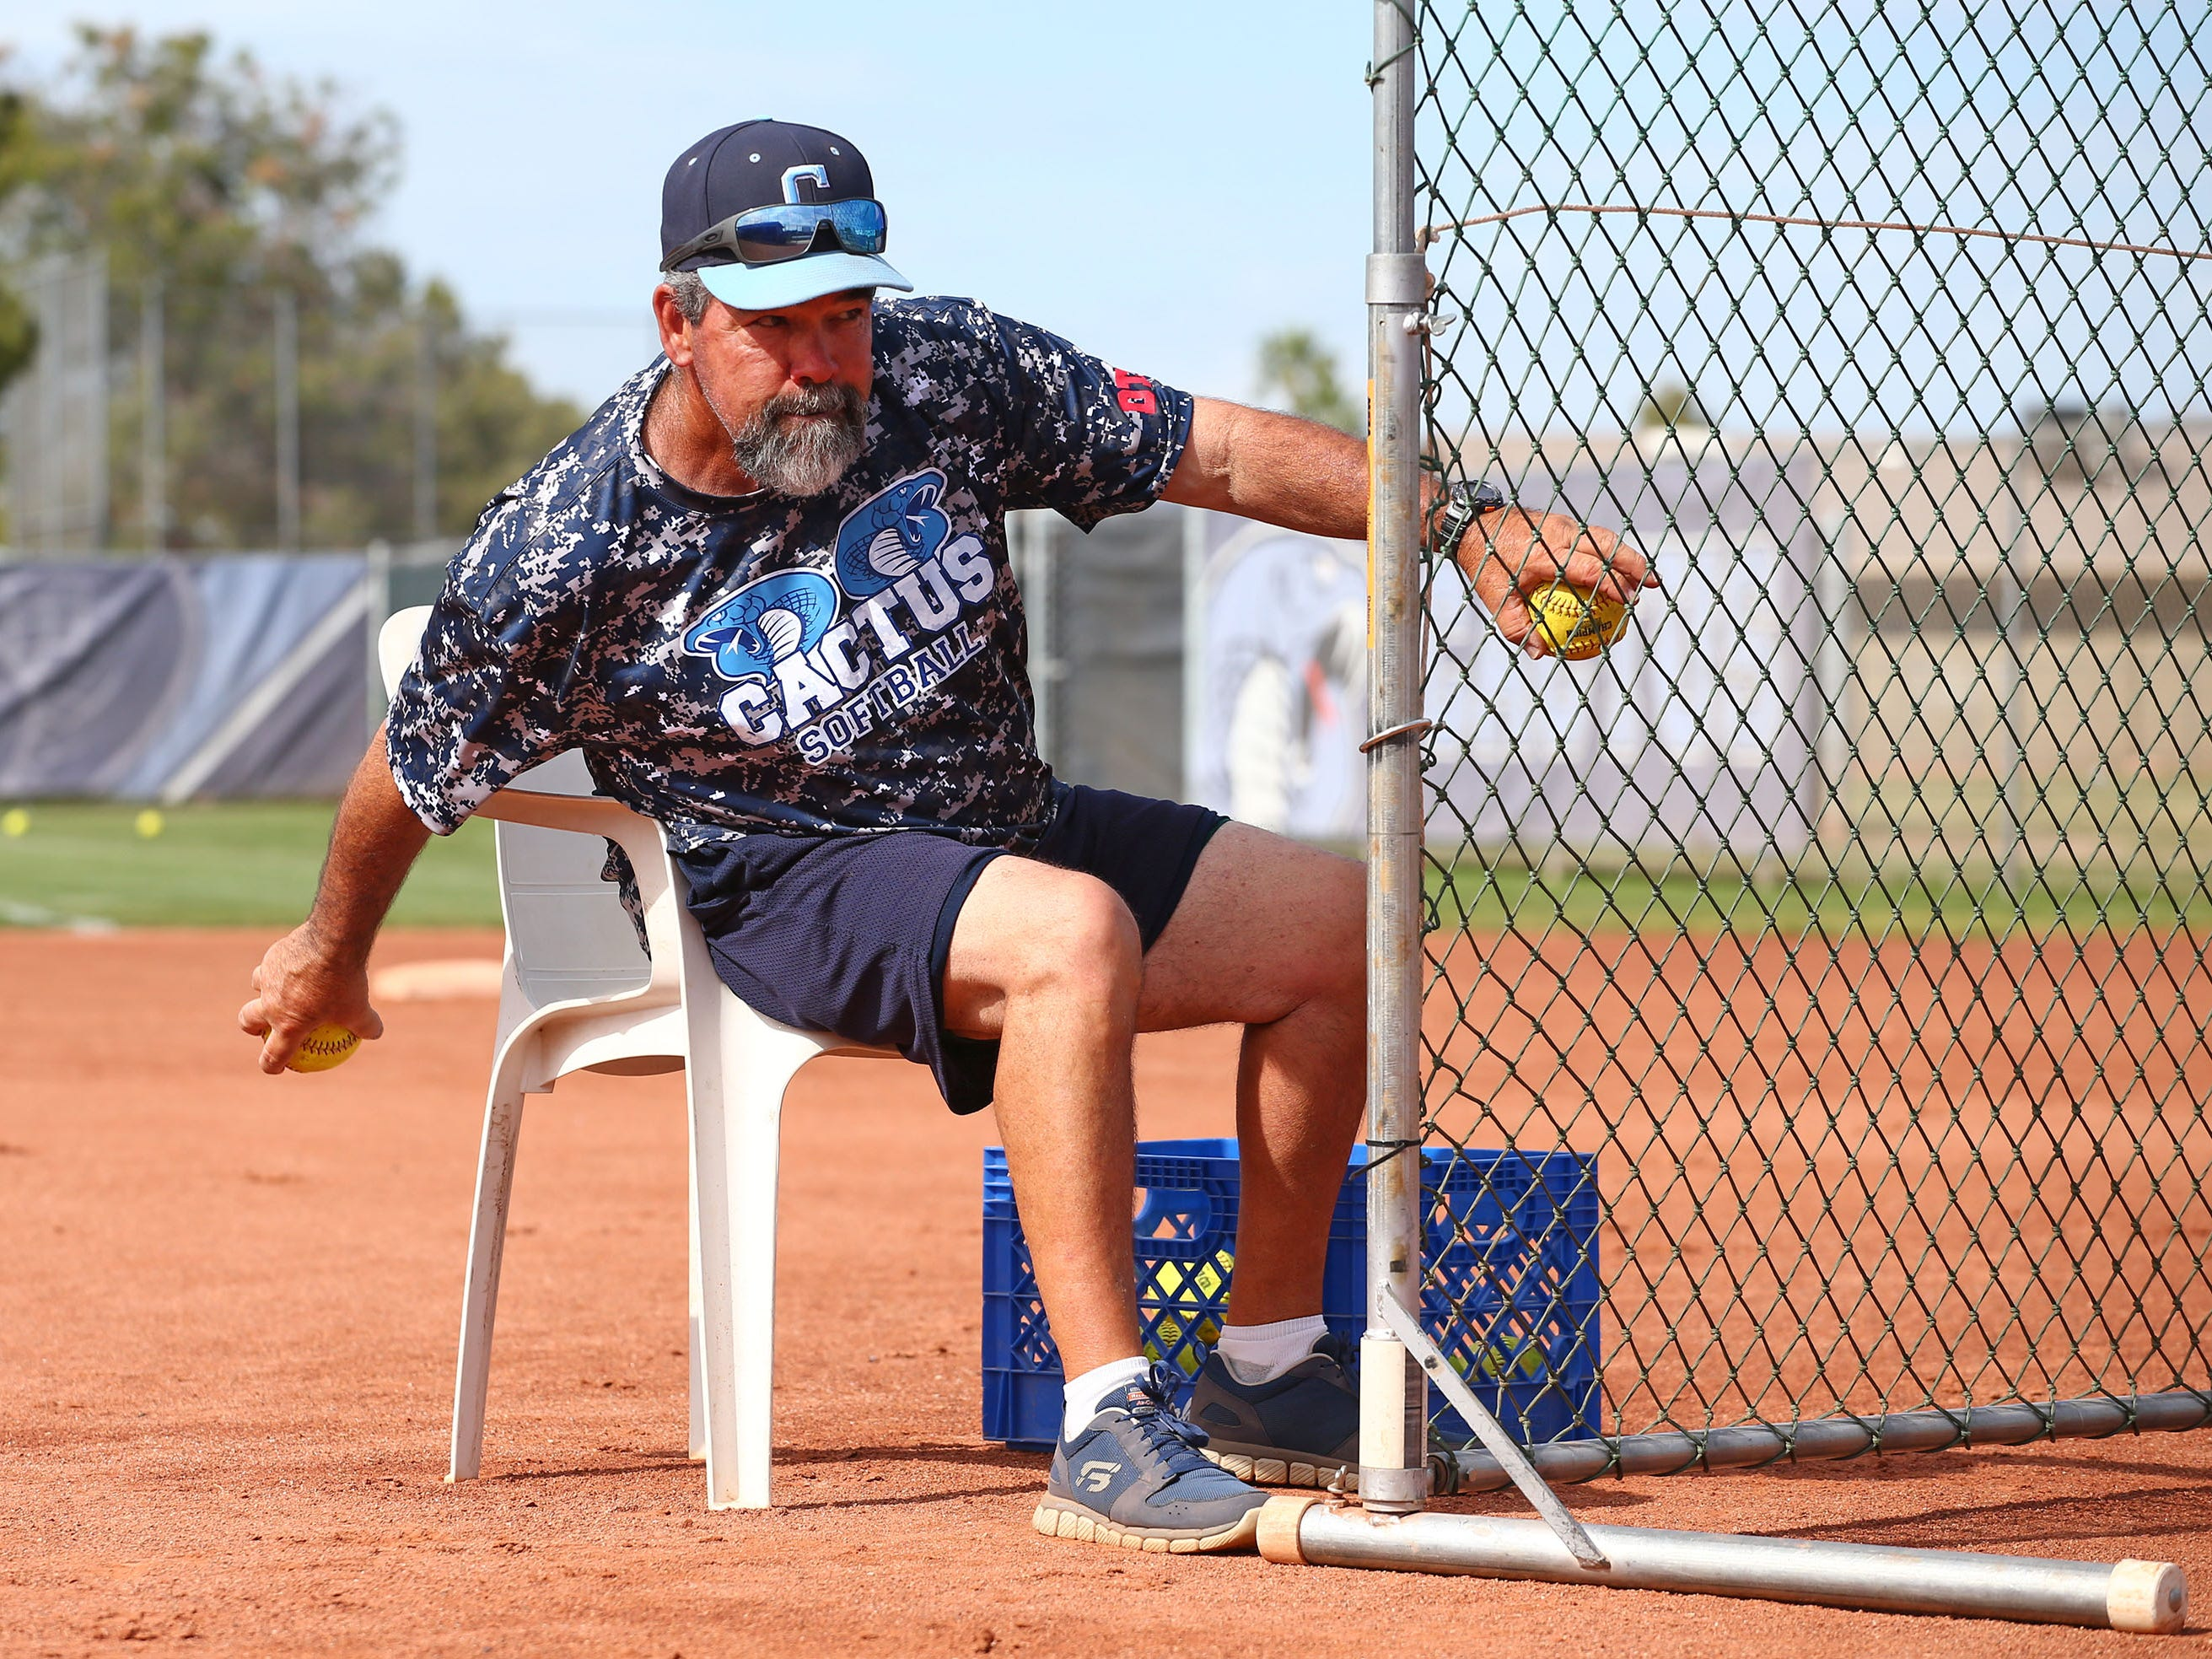 Cactus High softball coach Bartt Underwood during practice on Apr. 2, 2019 at Cactus High School in Glendale, Ariz.